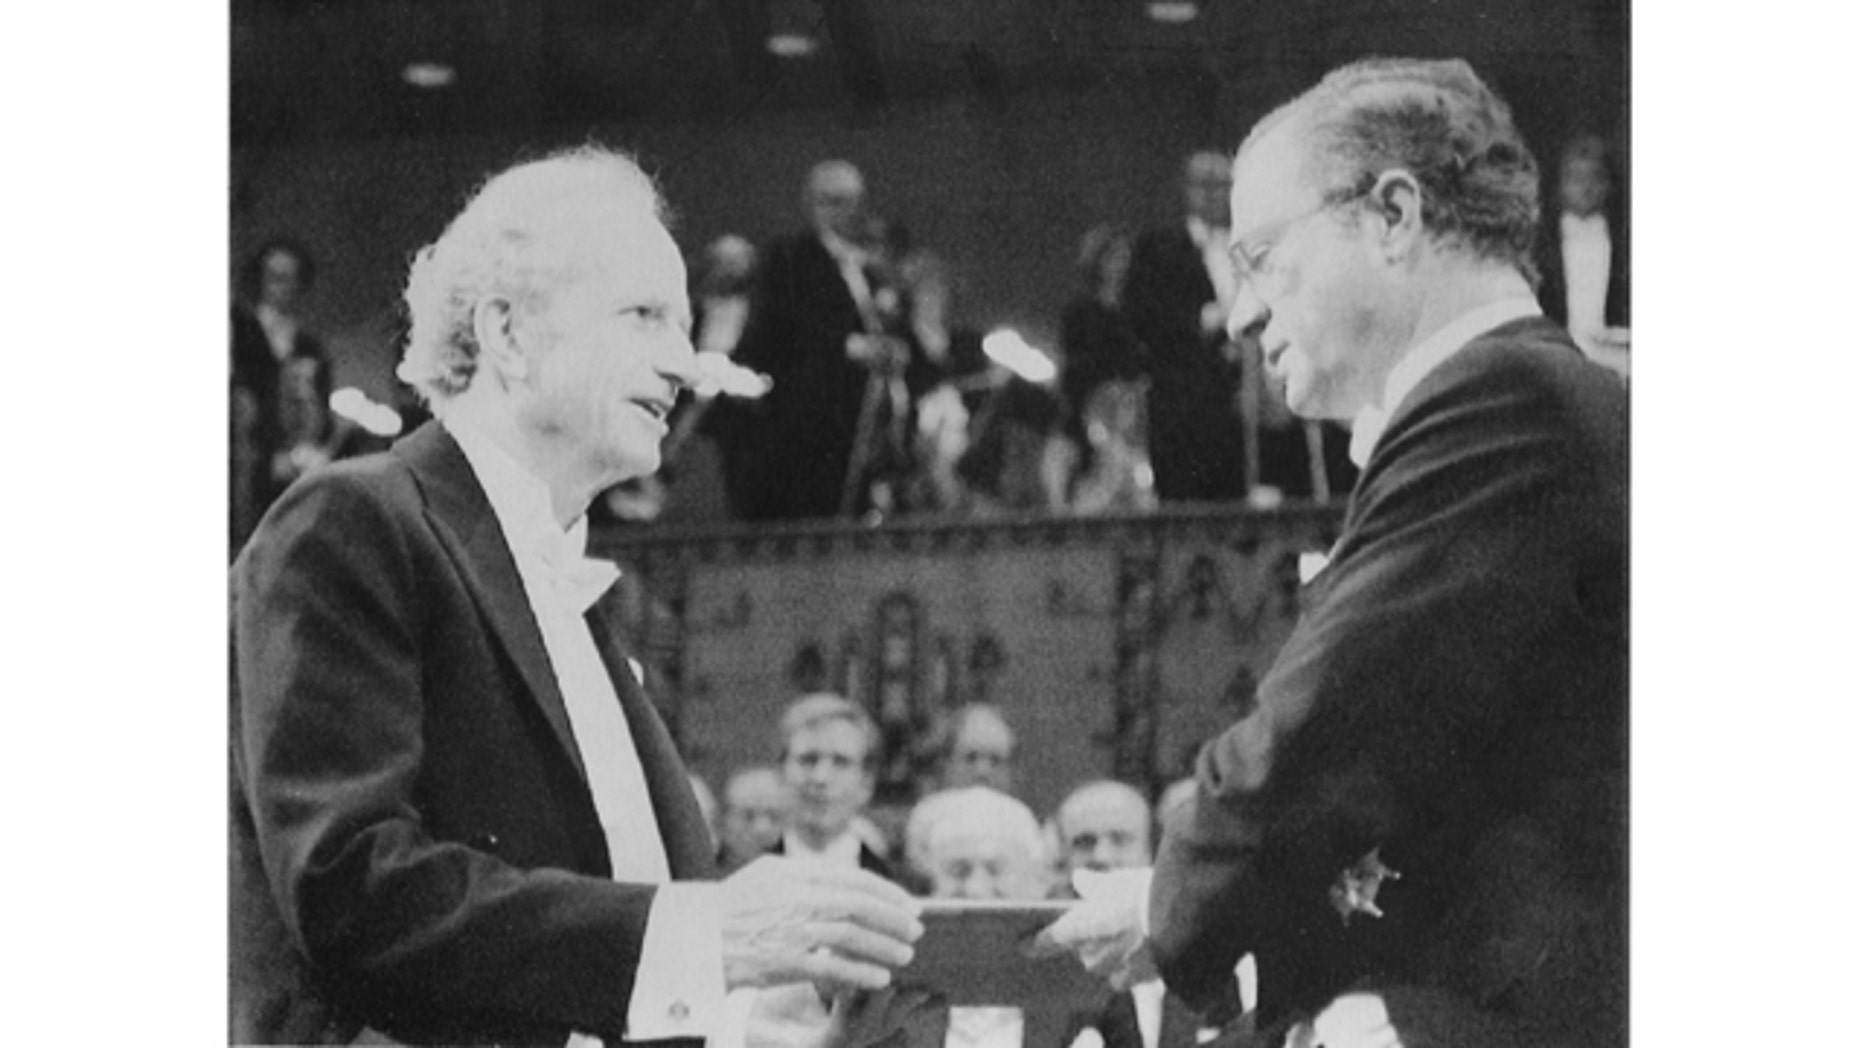 File-This Dec. 10 1992, file photo shows Gary S. Becker, left, from the University of Chicago, receiving the 1992 Nobel Economics Prize from Sweden's King Carl Gustaf, during the Nobel awarding ceremony in the Concert Hall in Stockholm. Becker died Saturday, May 3, 2014, at Northwestern Hospital from complications after an extended illness. He was 83. (AP Photo/Tobbe Gustavsson,File)